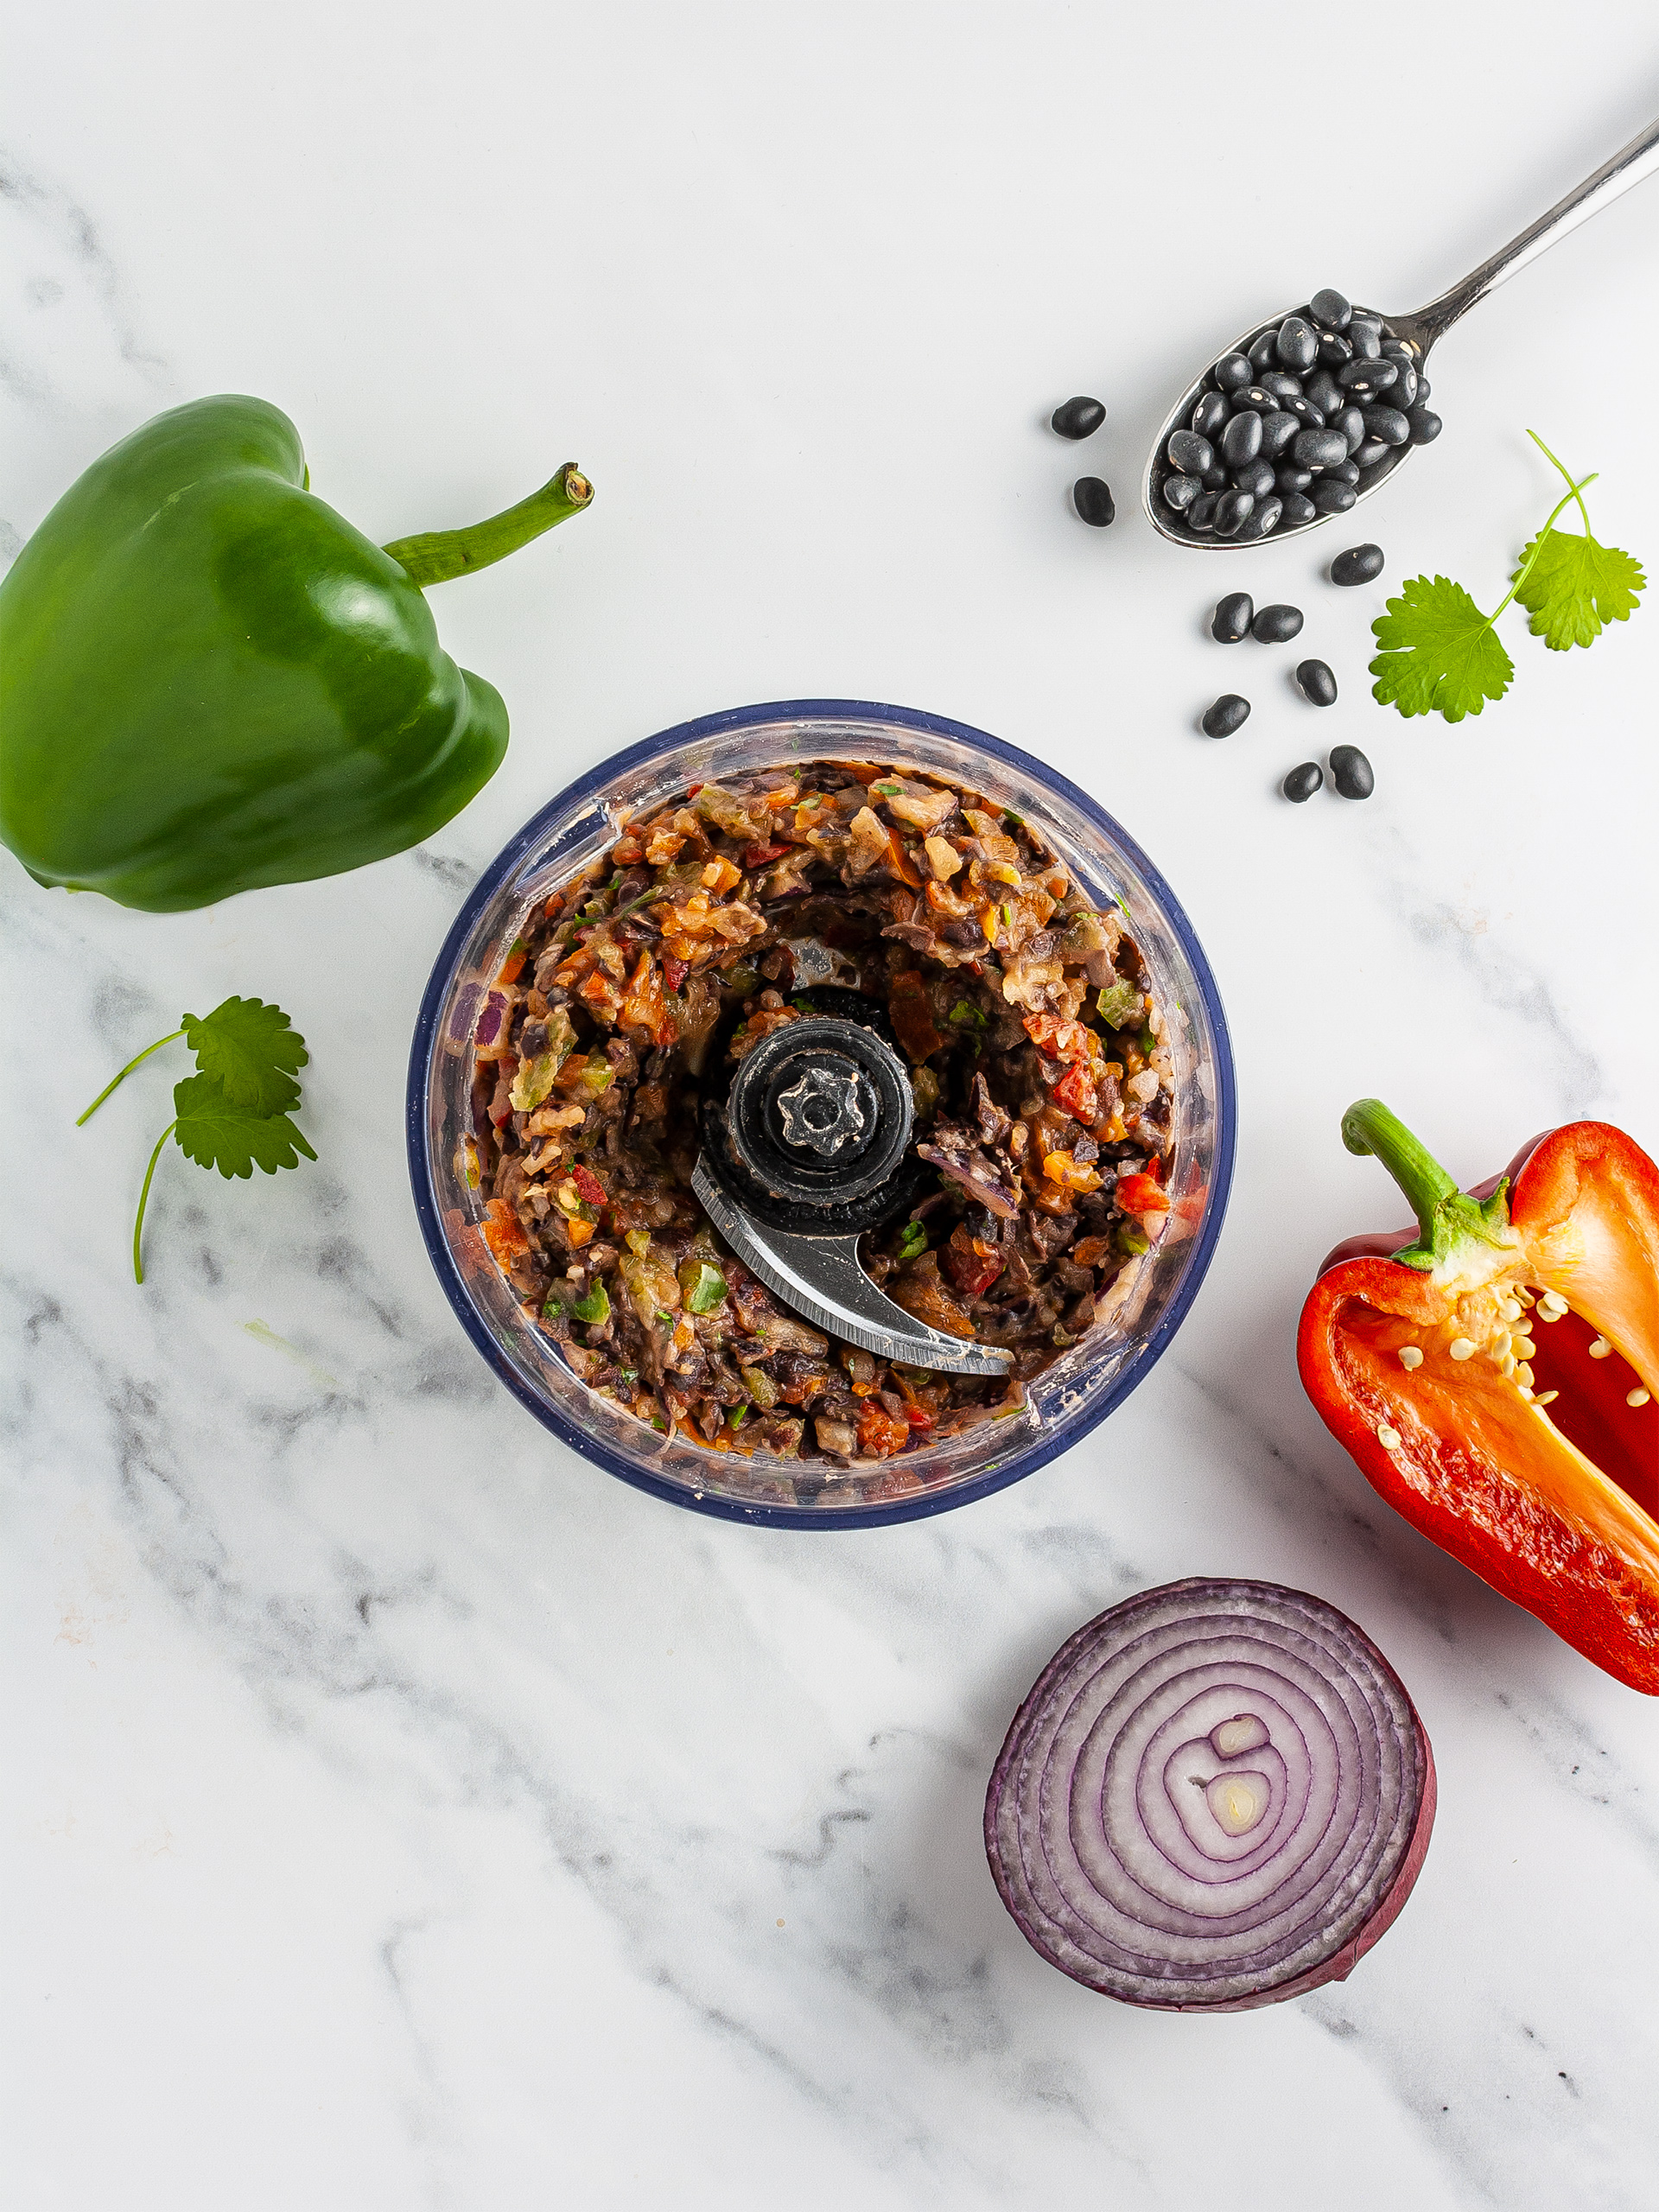 Black bean blended with peppers, onions, and coriander